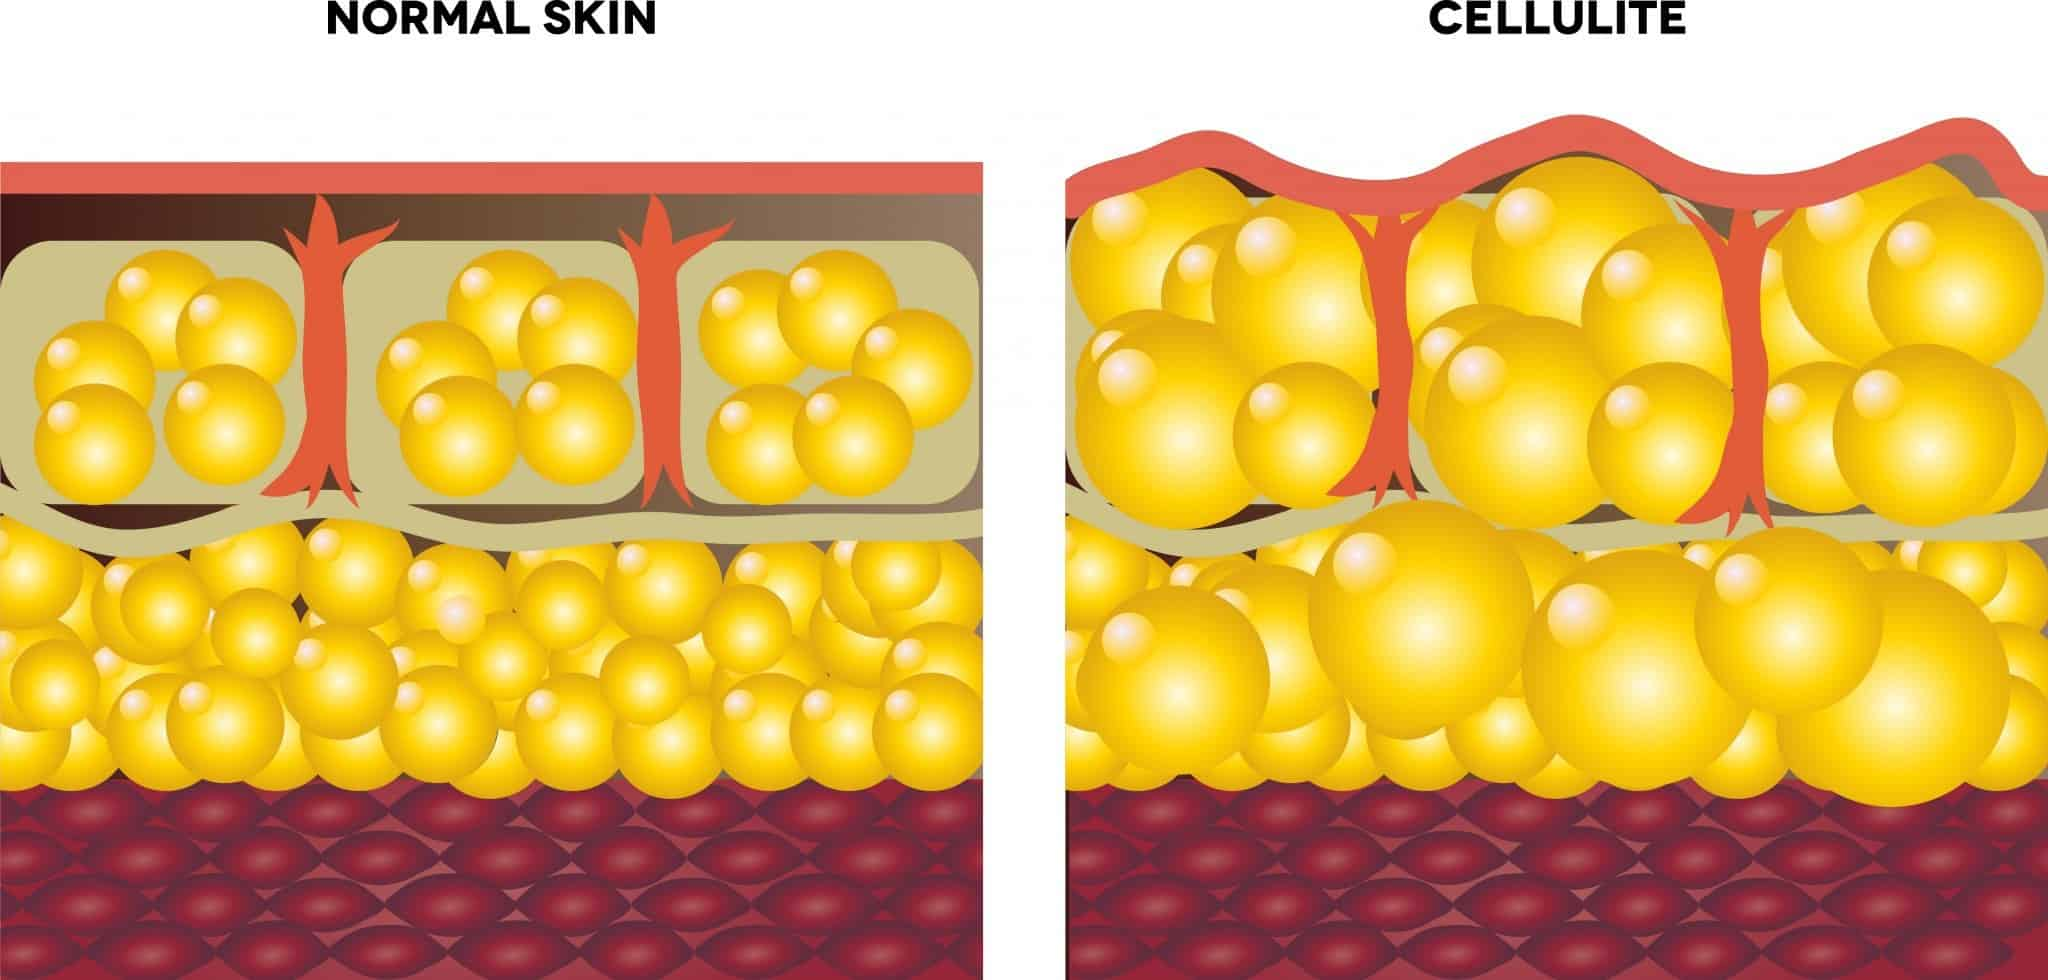 A graphic showing the formation of cellulite under the skin.